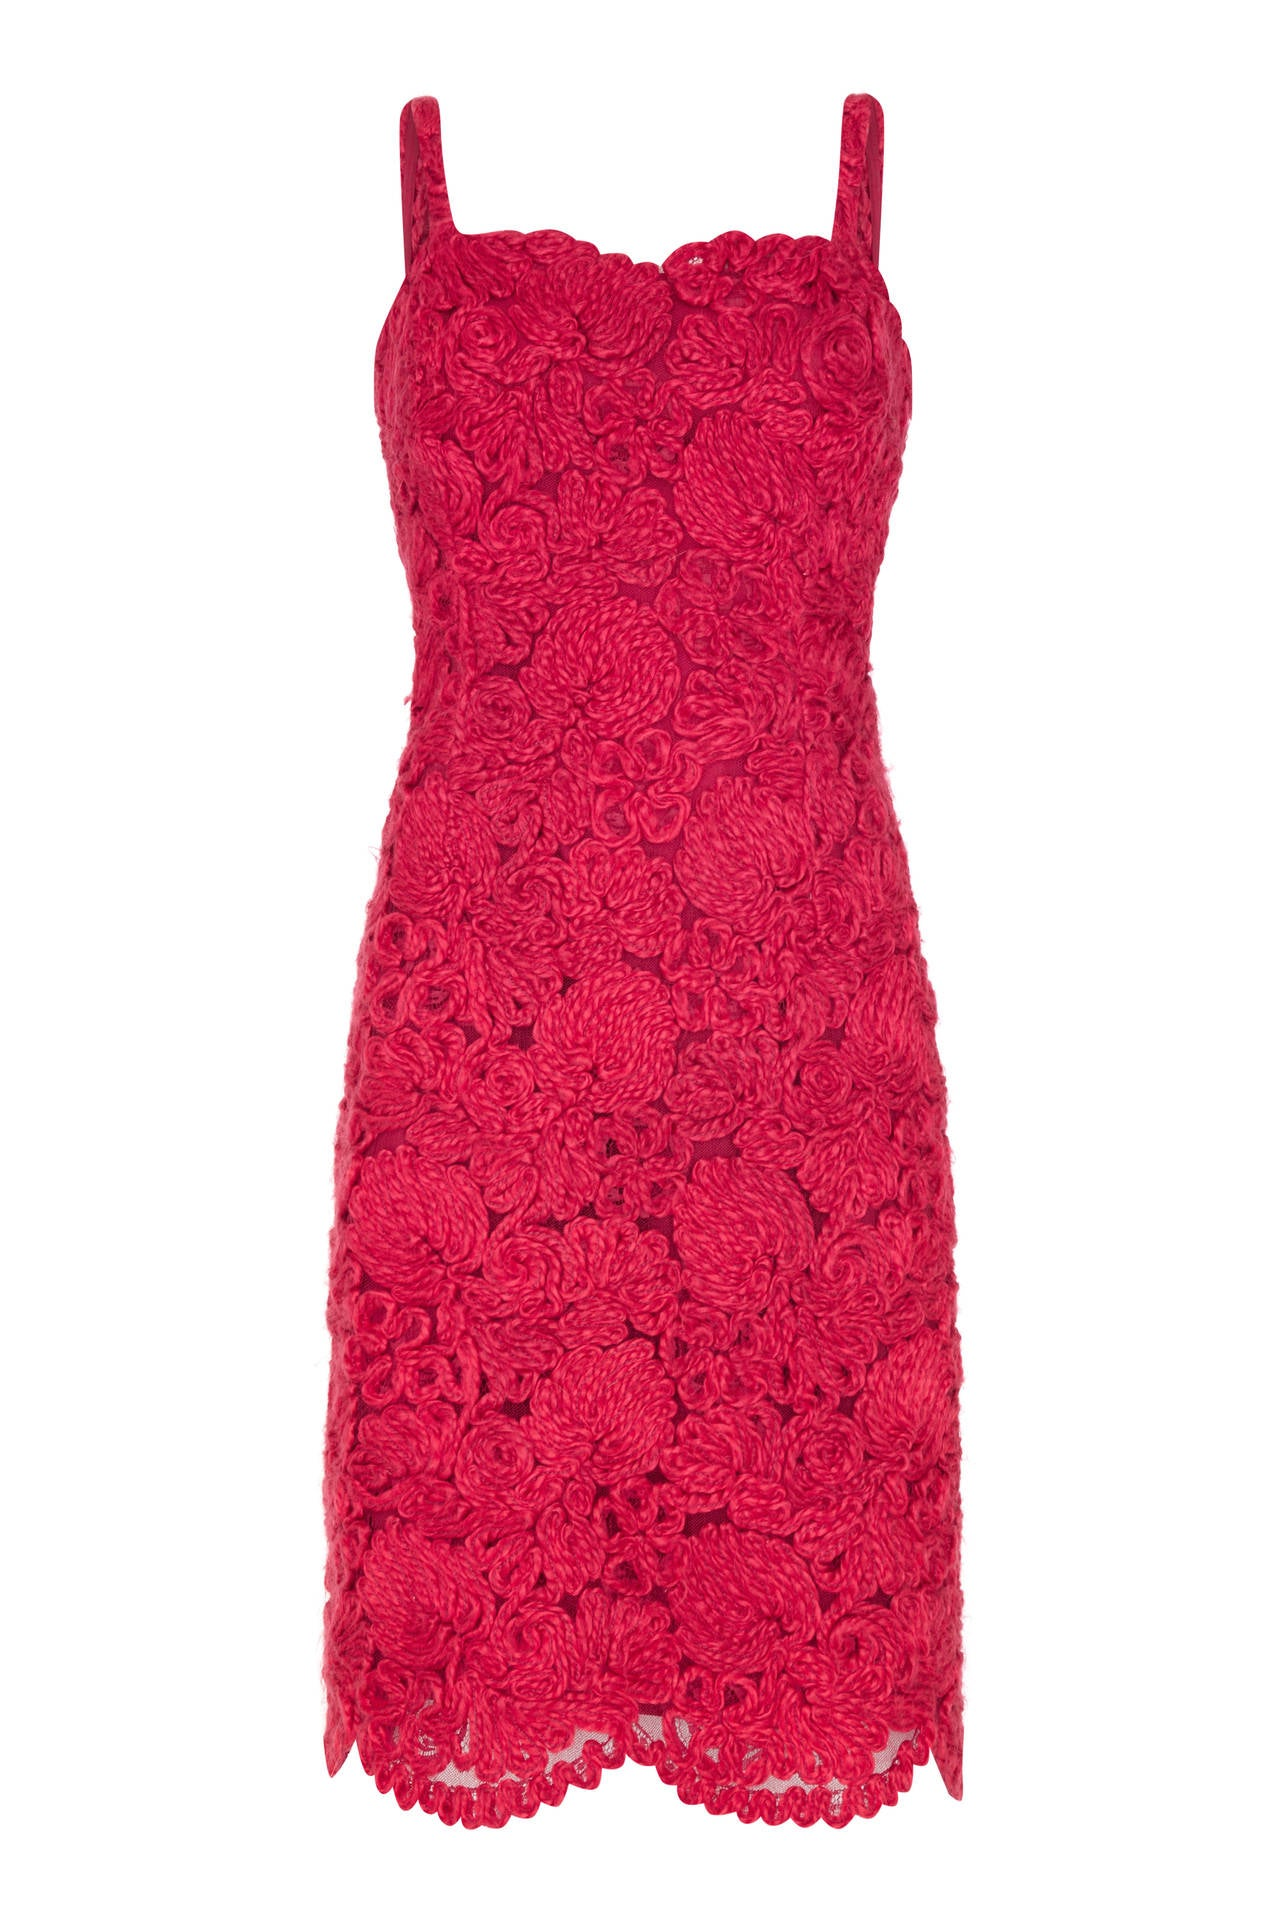 1960s french couture red wool applique dress suit at 1stdibs for French couture dresses